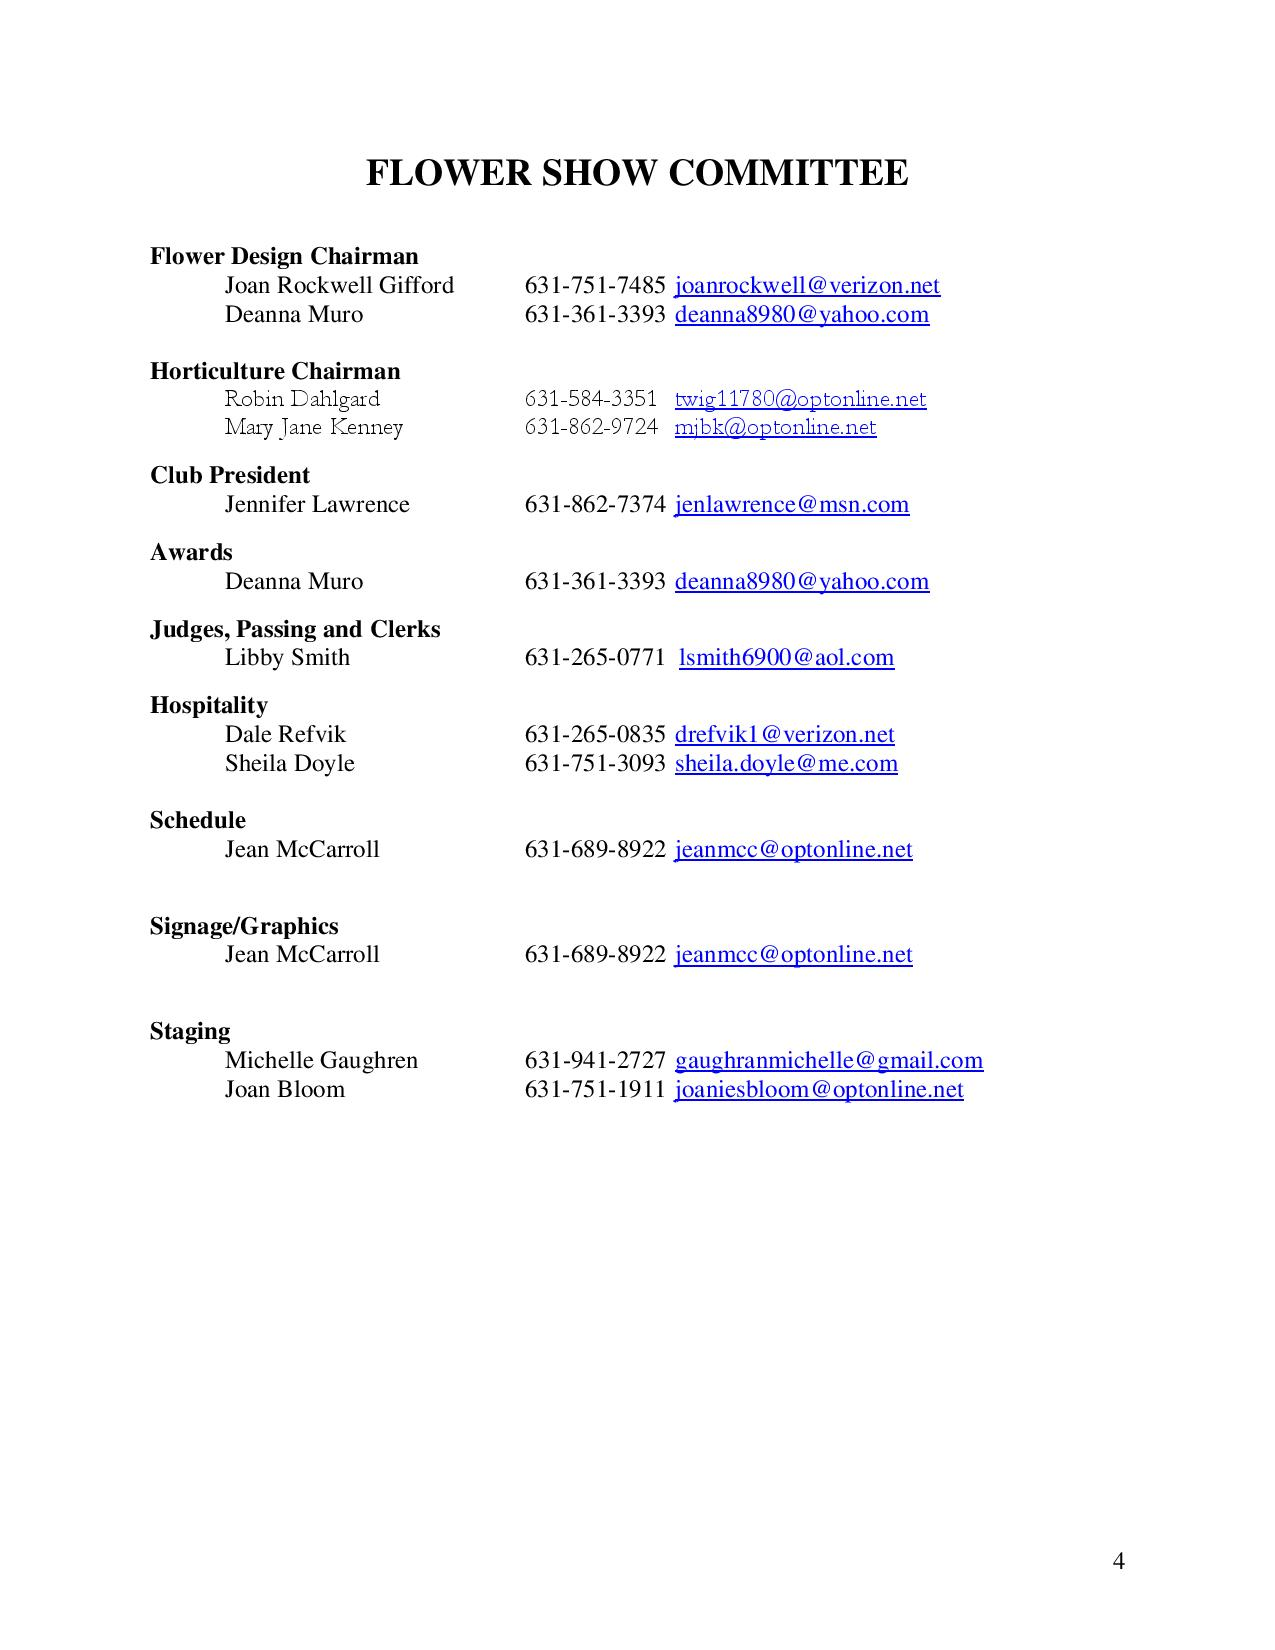 Innovations Flower Show Schedule 2016 3-page-006.jpg